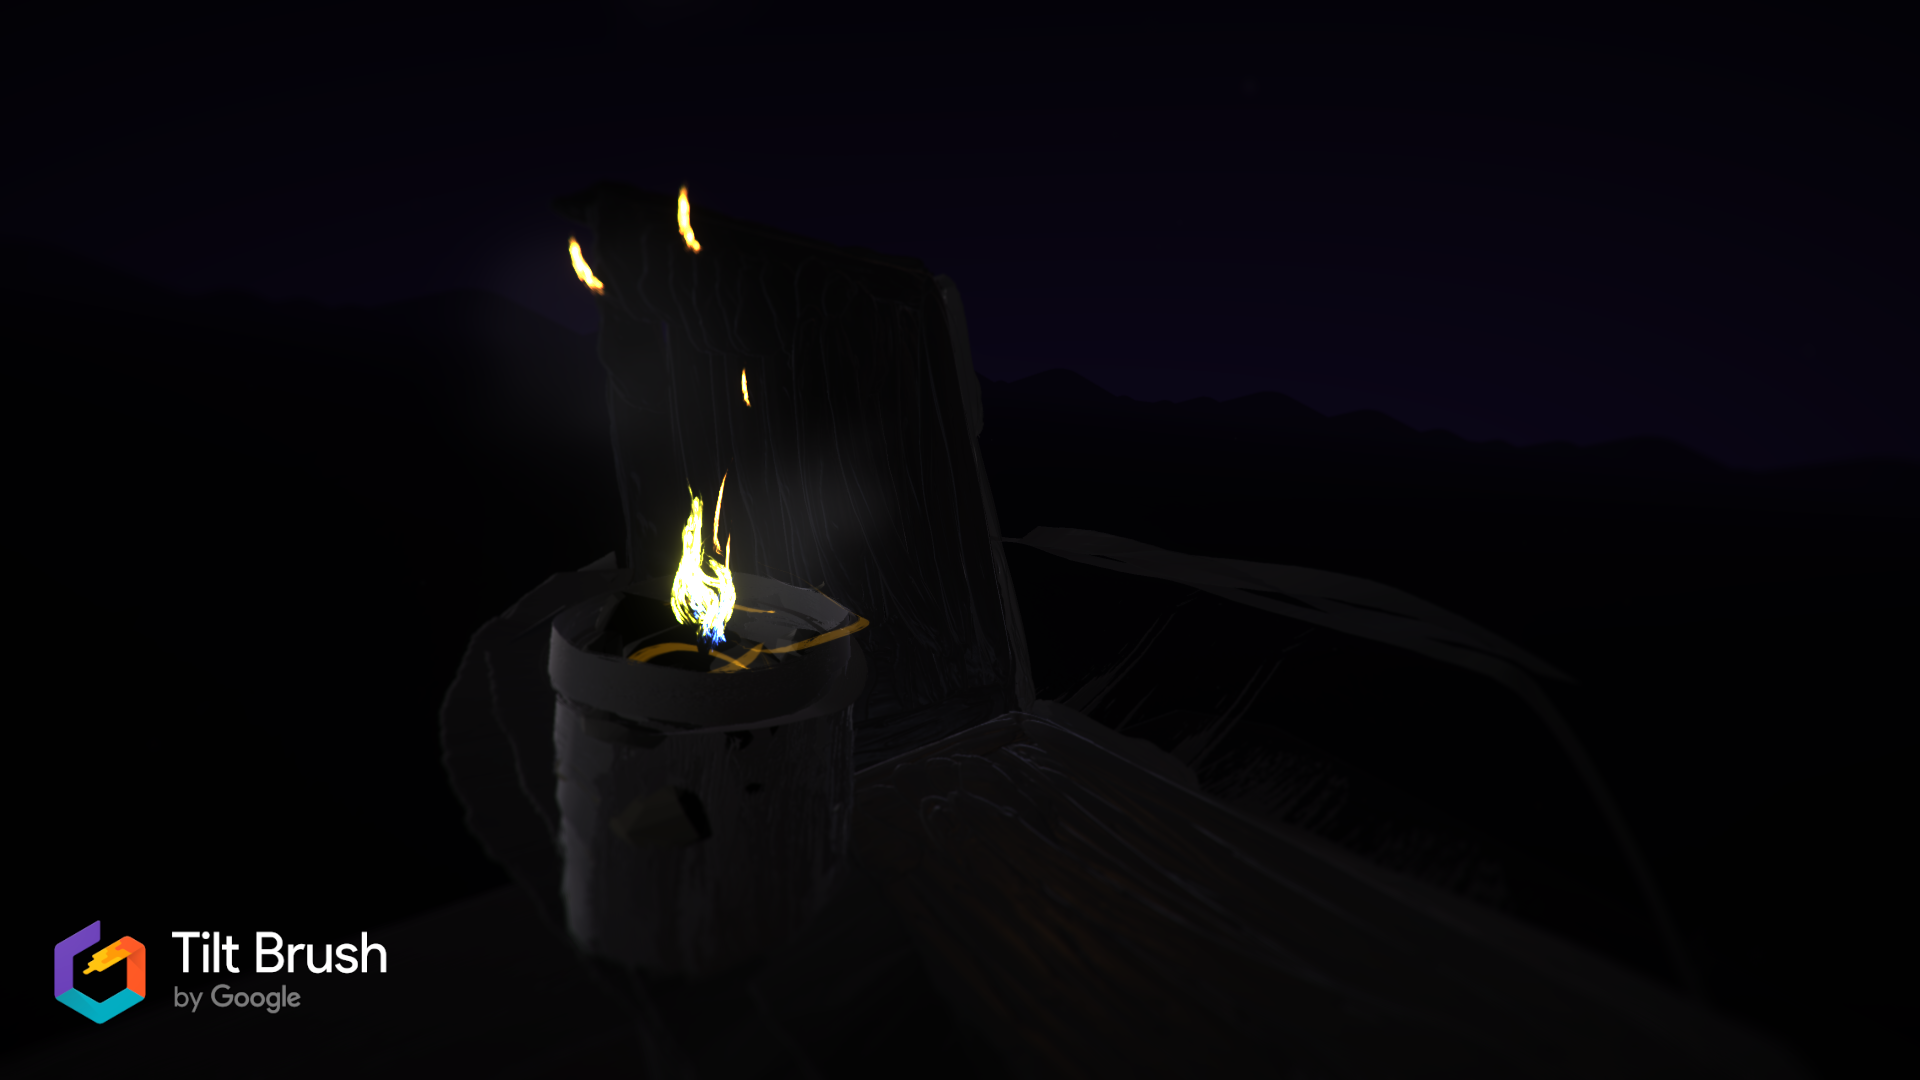 Painting in Tilt Brush of a candle sitting on the arm of a chair.